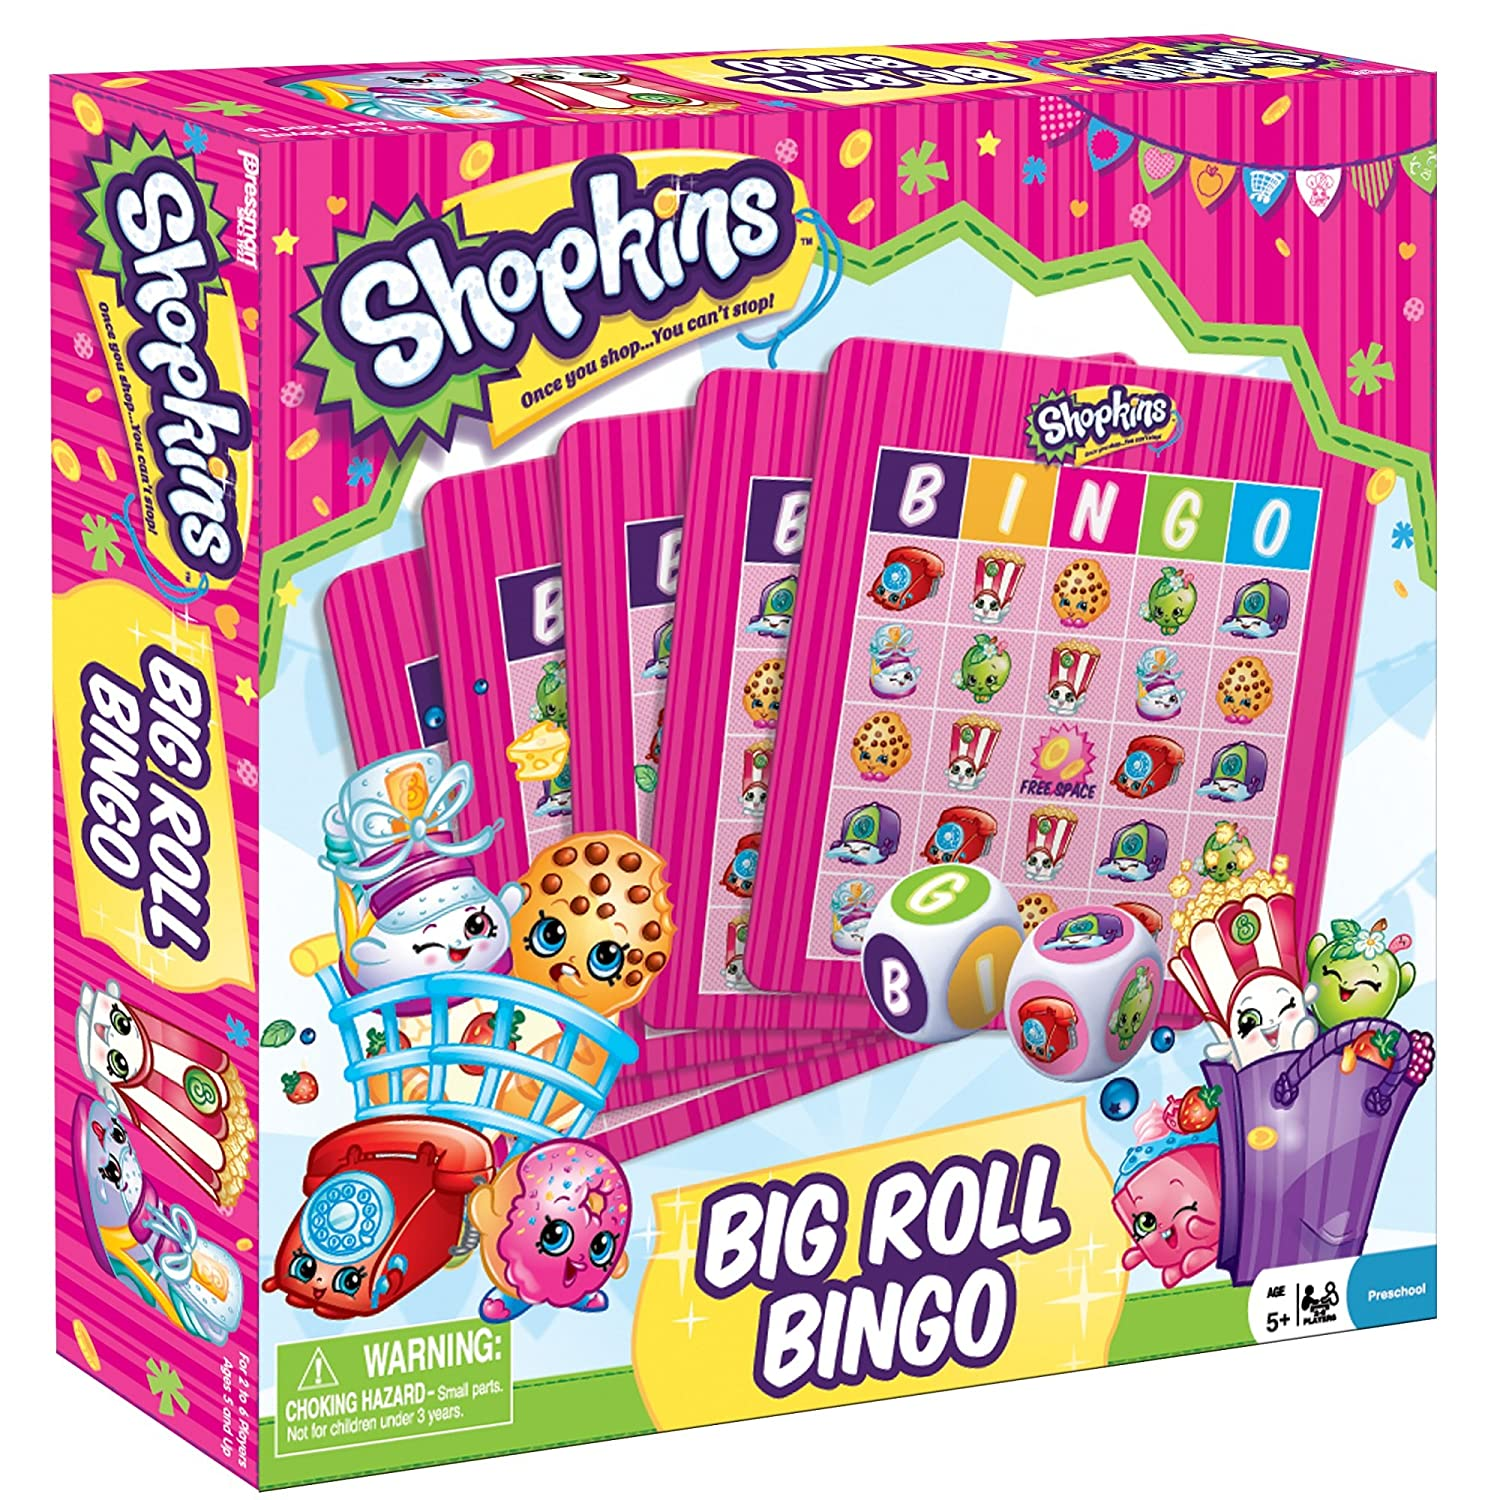 Shopkins Big Roll Bingo John Adams 4052-06